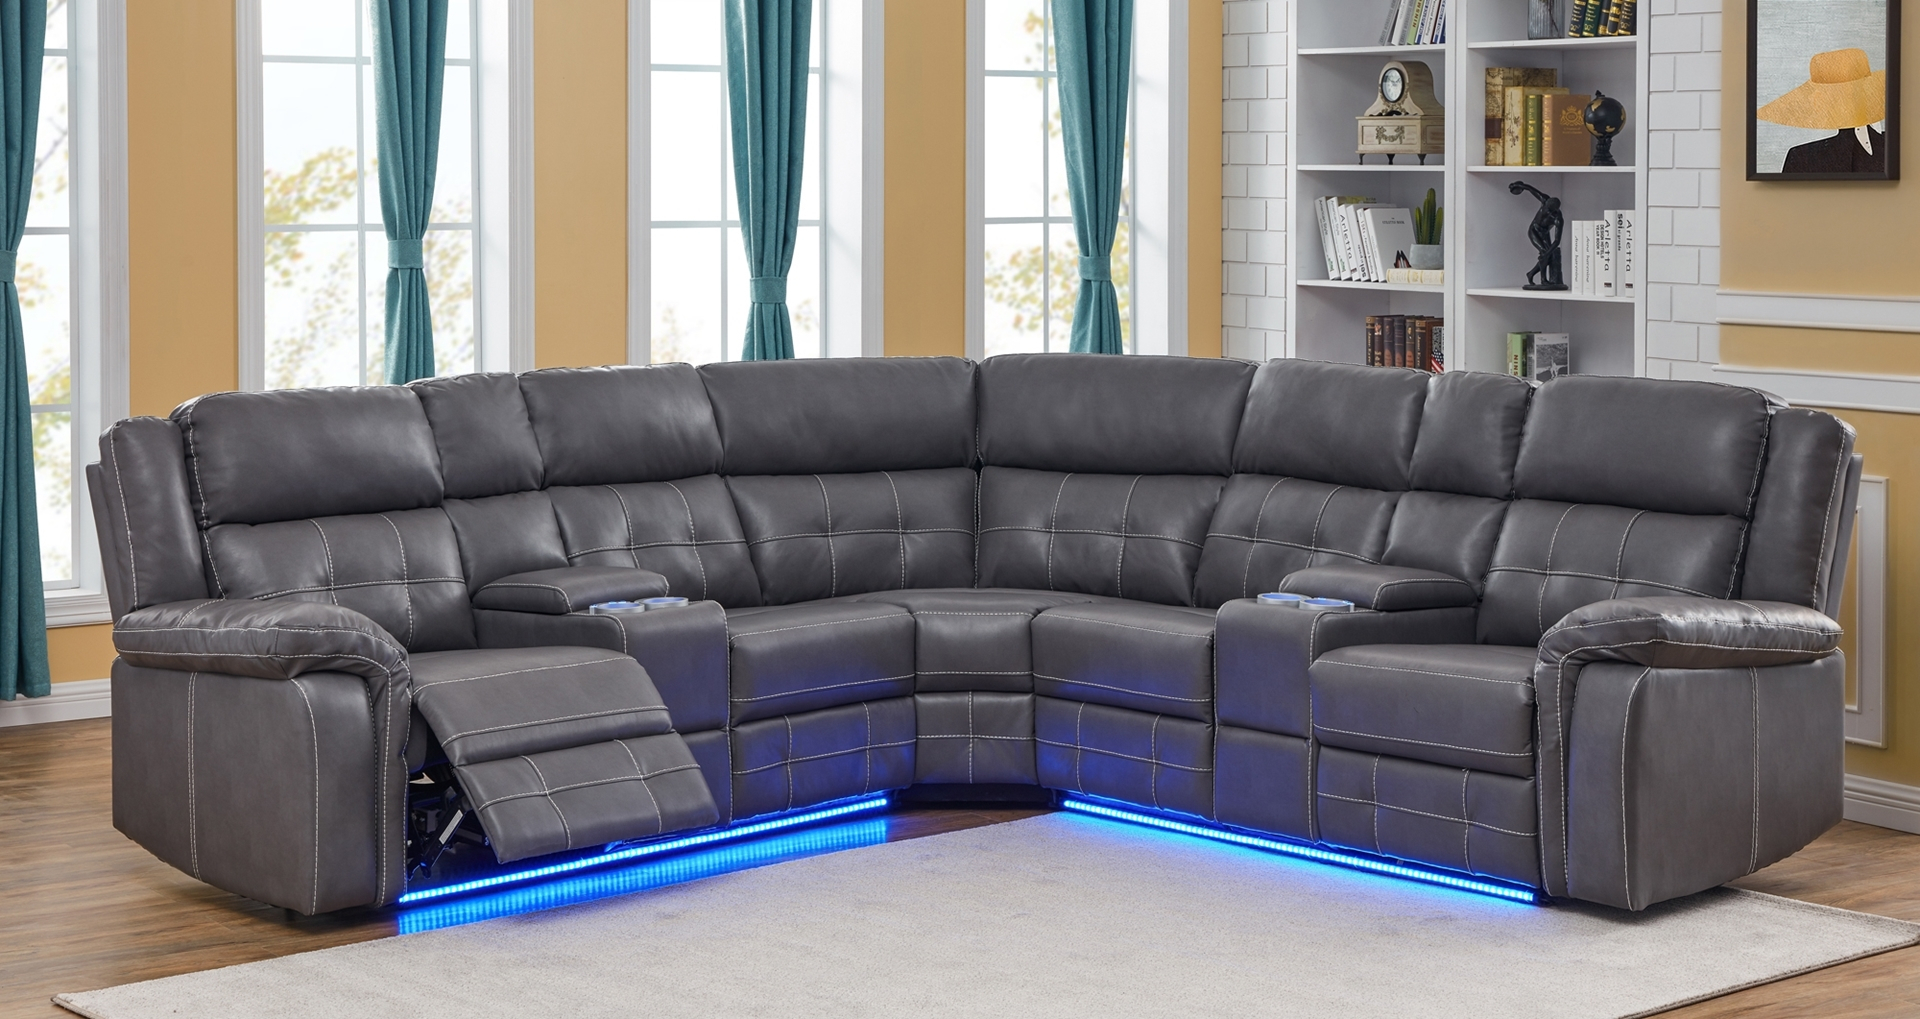 Cobalt Power/Manual Reclining Sectional Sofa With Led For Raven Power Reclining Sofas (View 15 of 15)